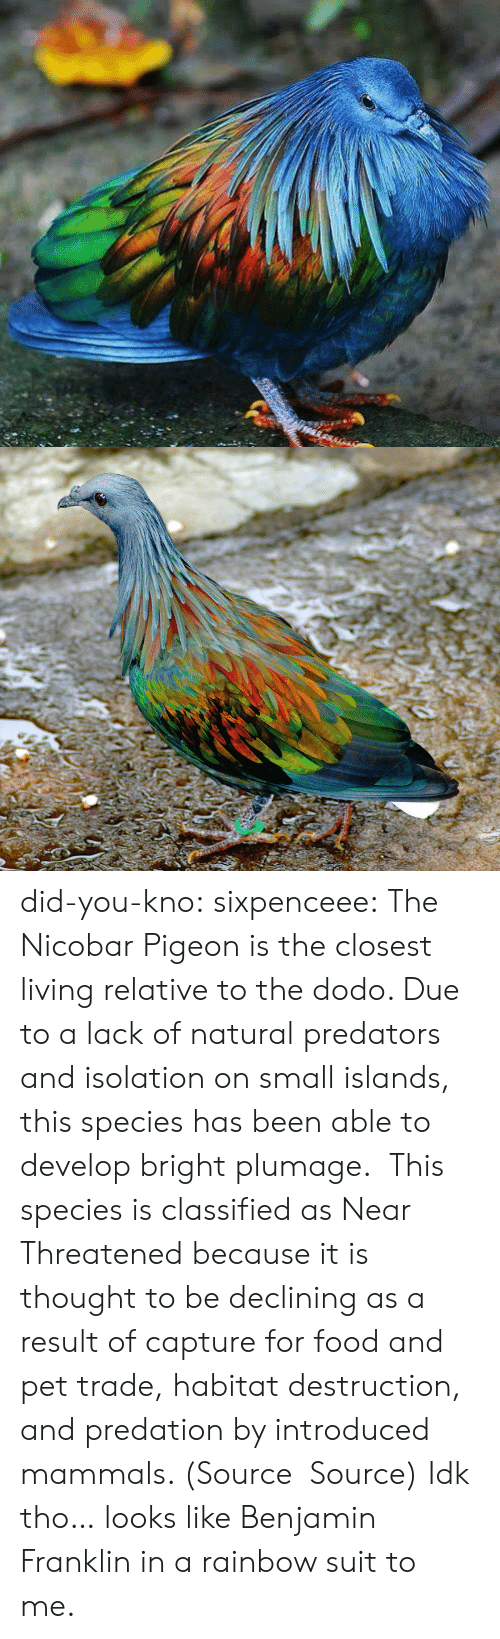 Benjamin Franklin: did-you-kno:  sixpenceee:  The Nicobar Pigeon is the closest living relative to the dodo. Due to a lack of natural predators and isolation on small islands, this species has been able to develop bright plumage.  This species is classified as Near Threatened because it is thought to be declining as a result of capture for food and pet trade, habitat destruction, and predation by introduced mammals. (Source  Source)  Idk tho… looks like Benjamin Franklin in a rainbow suit to me.